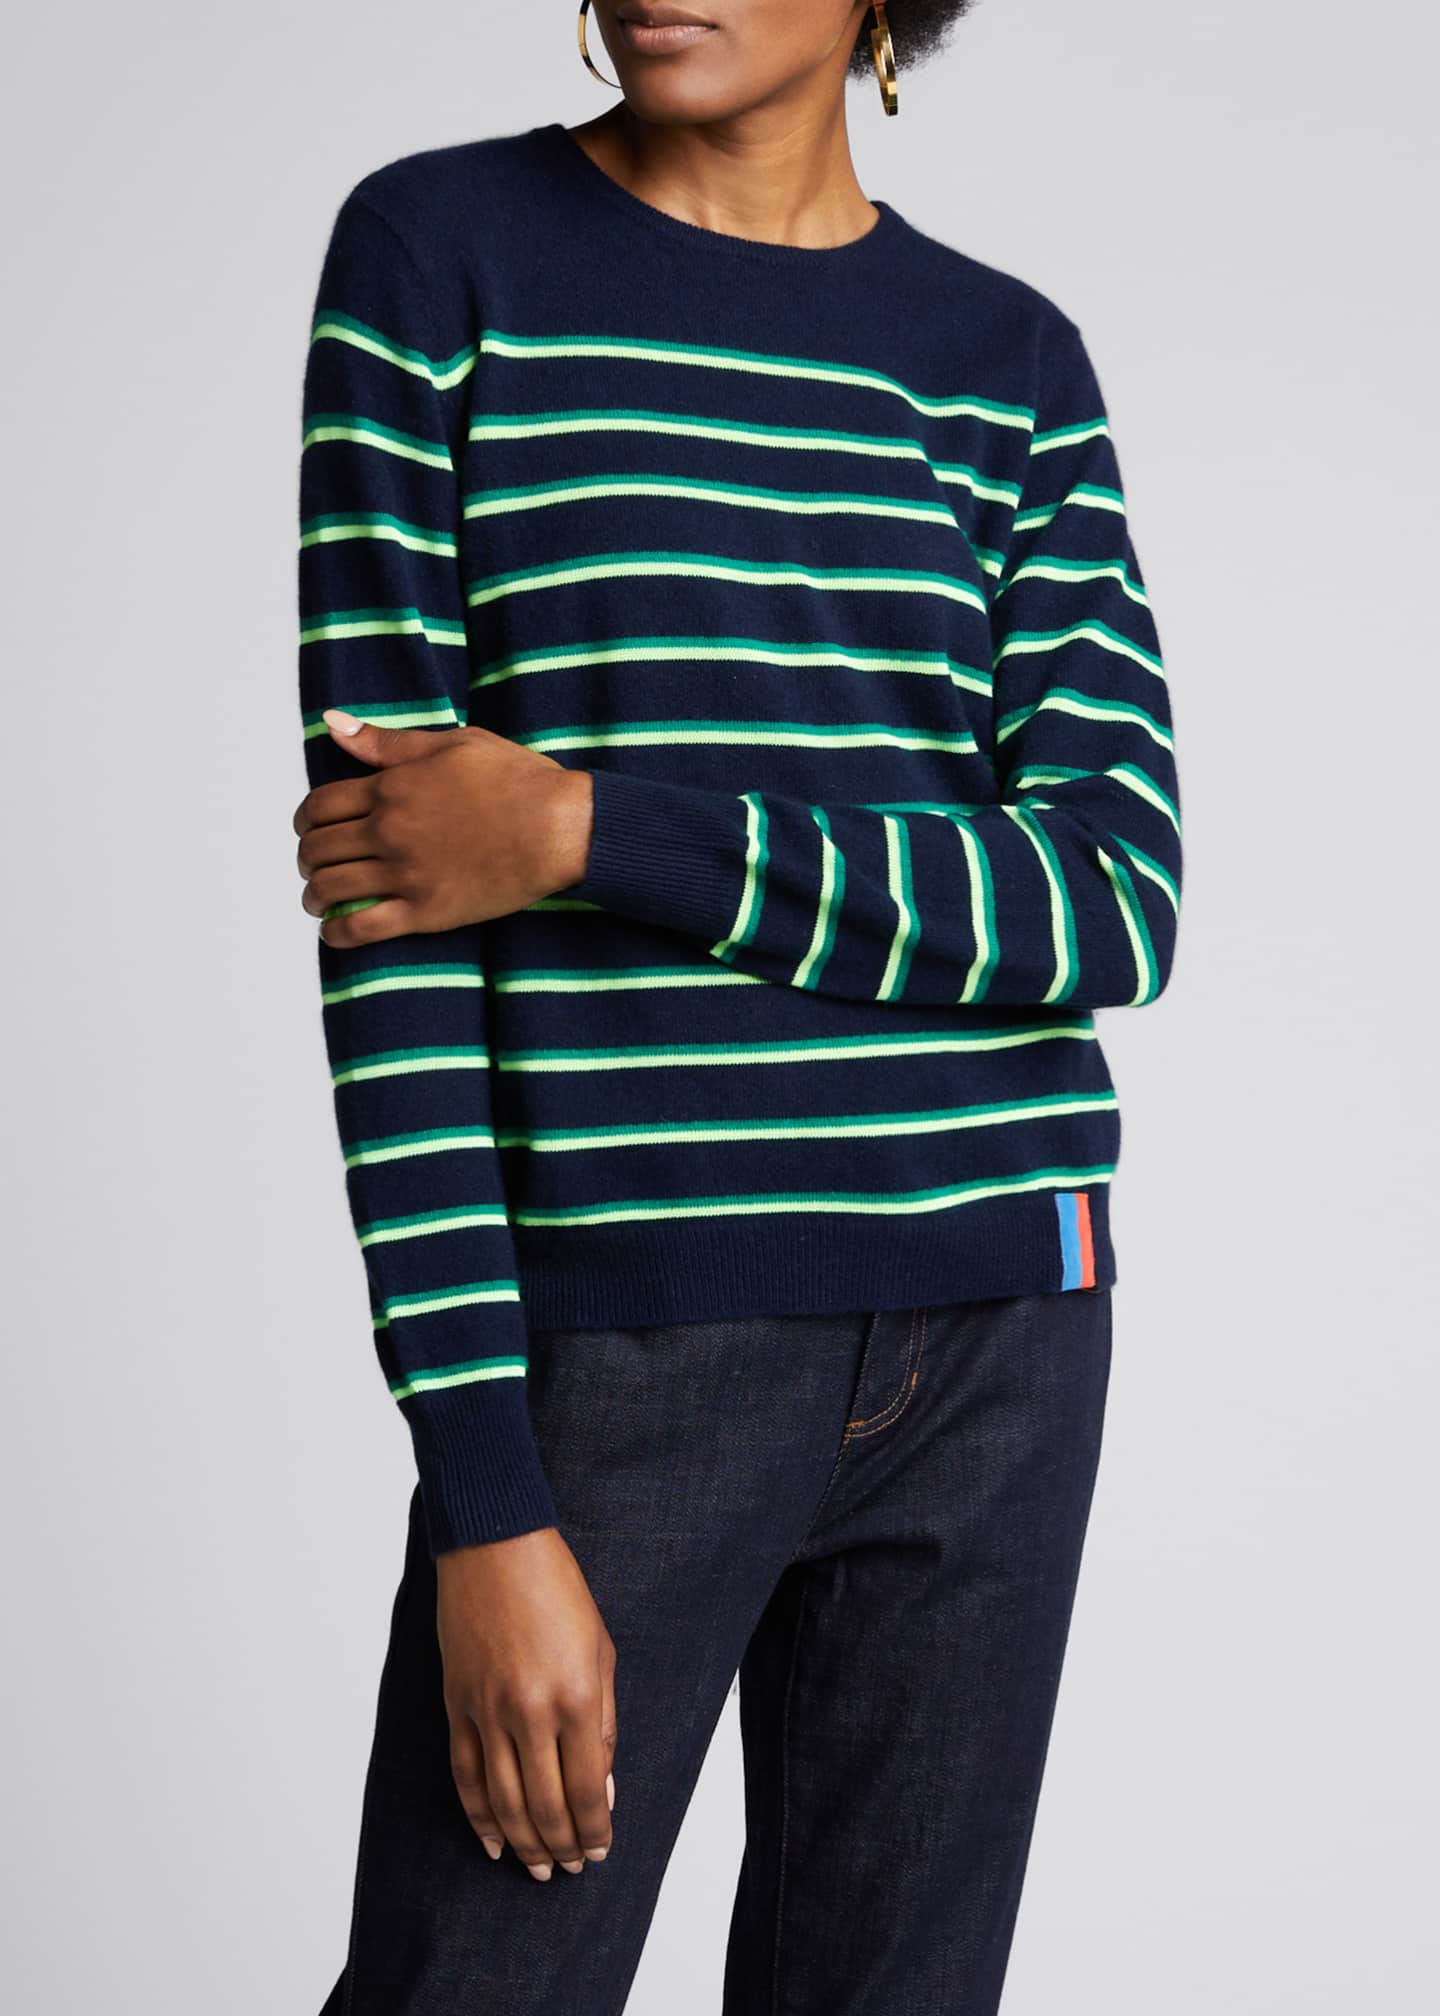 Image 3 of 4: The Samara Striped Crewneck Sweater